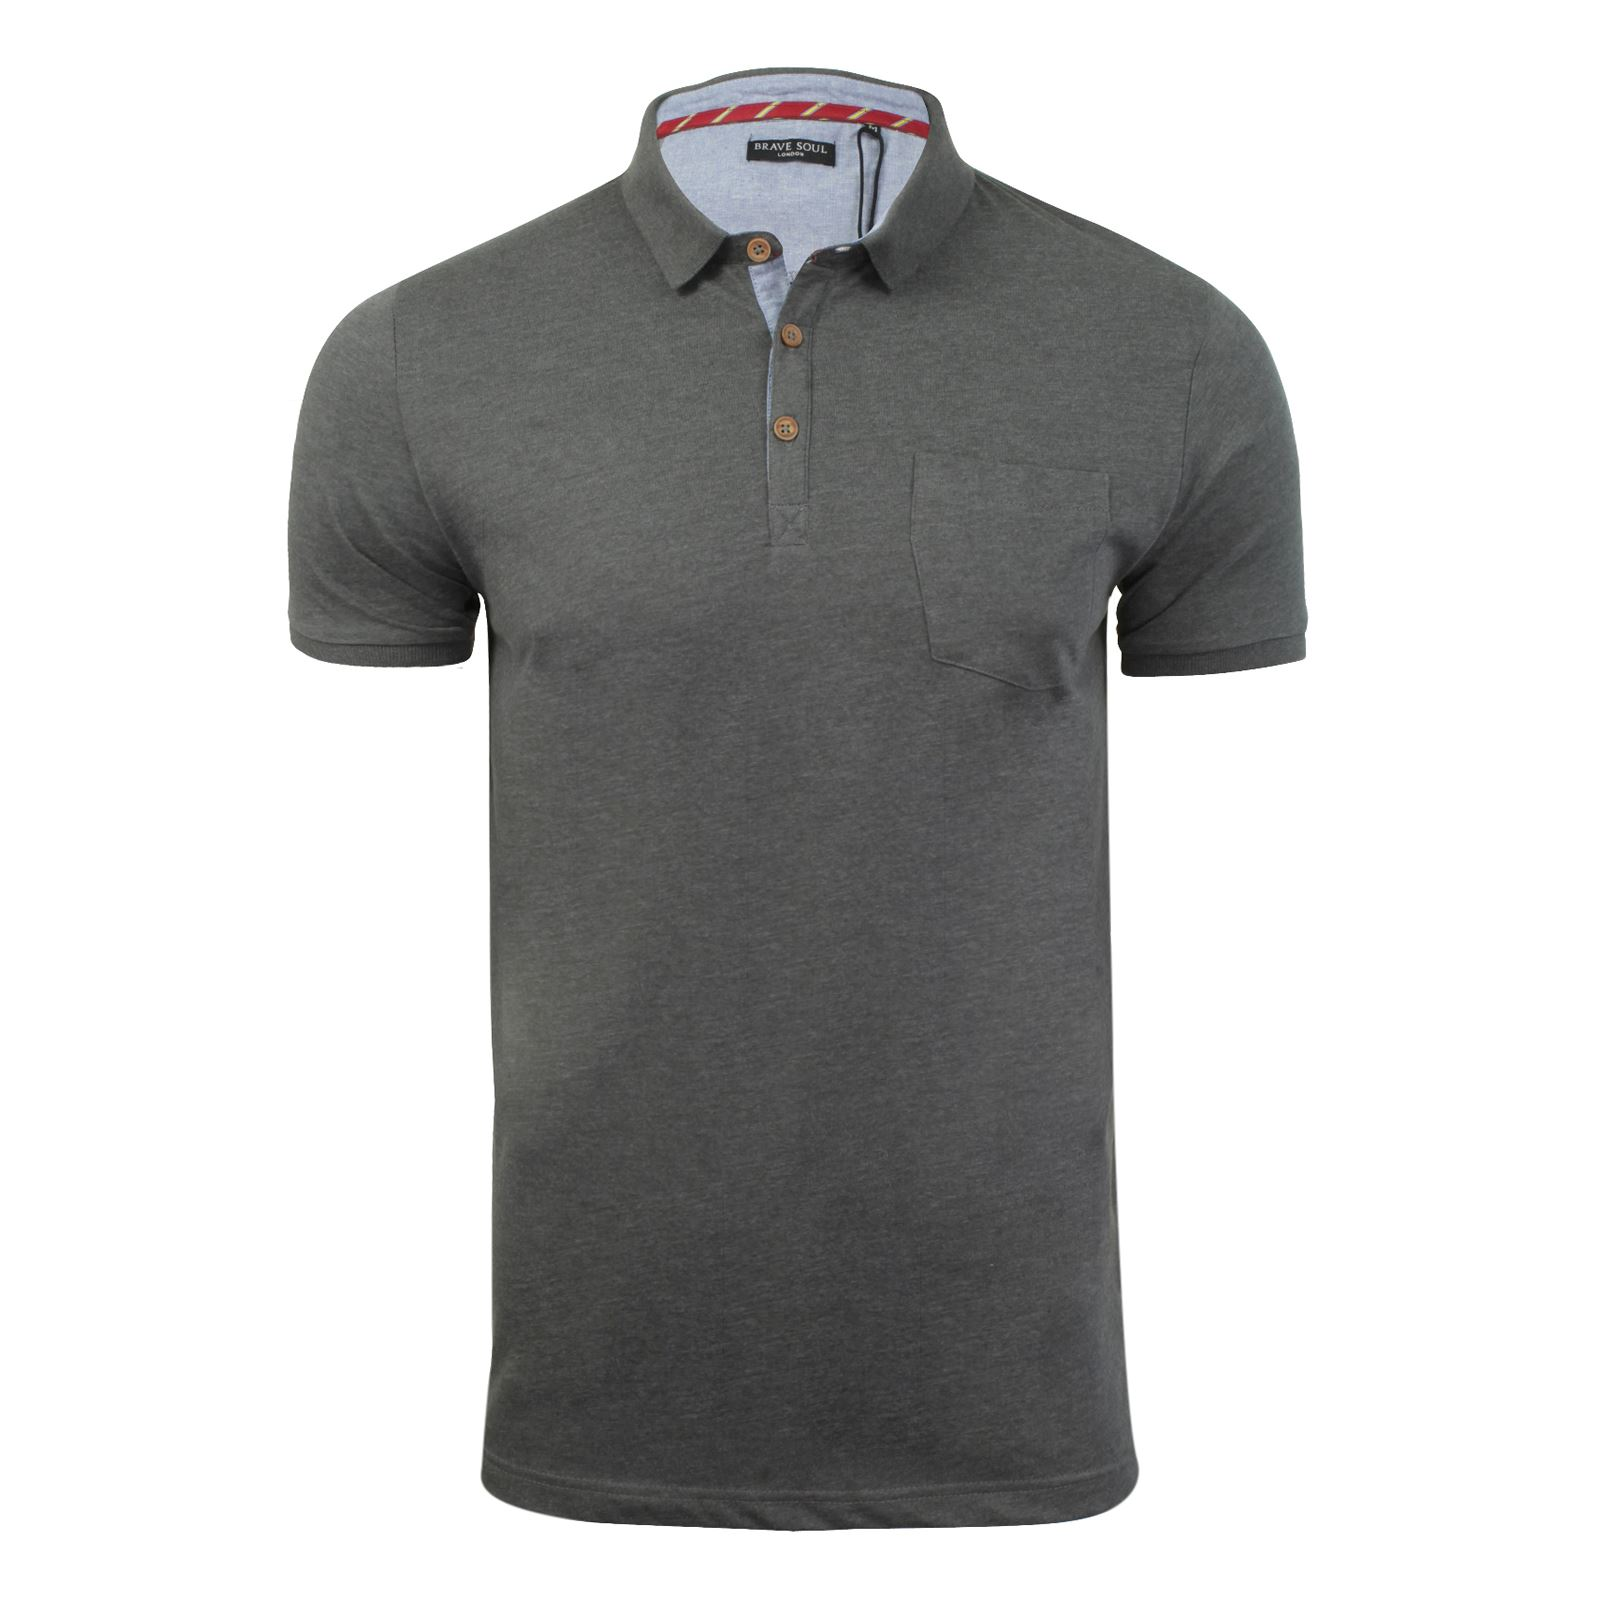 Mens-Polo-T-Shirt-Brave-Soul-Glover-Cotton-Collared-Short-Sleeve-Casual-Top thumbnail 81